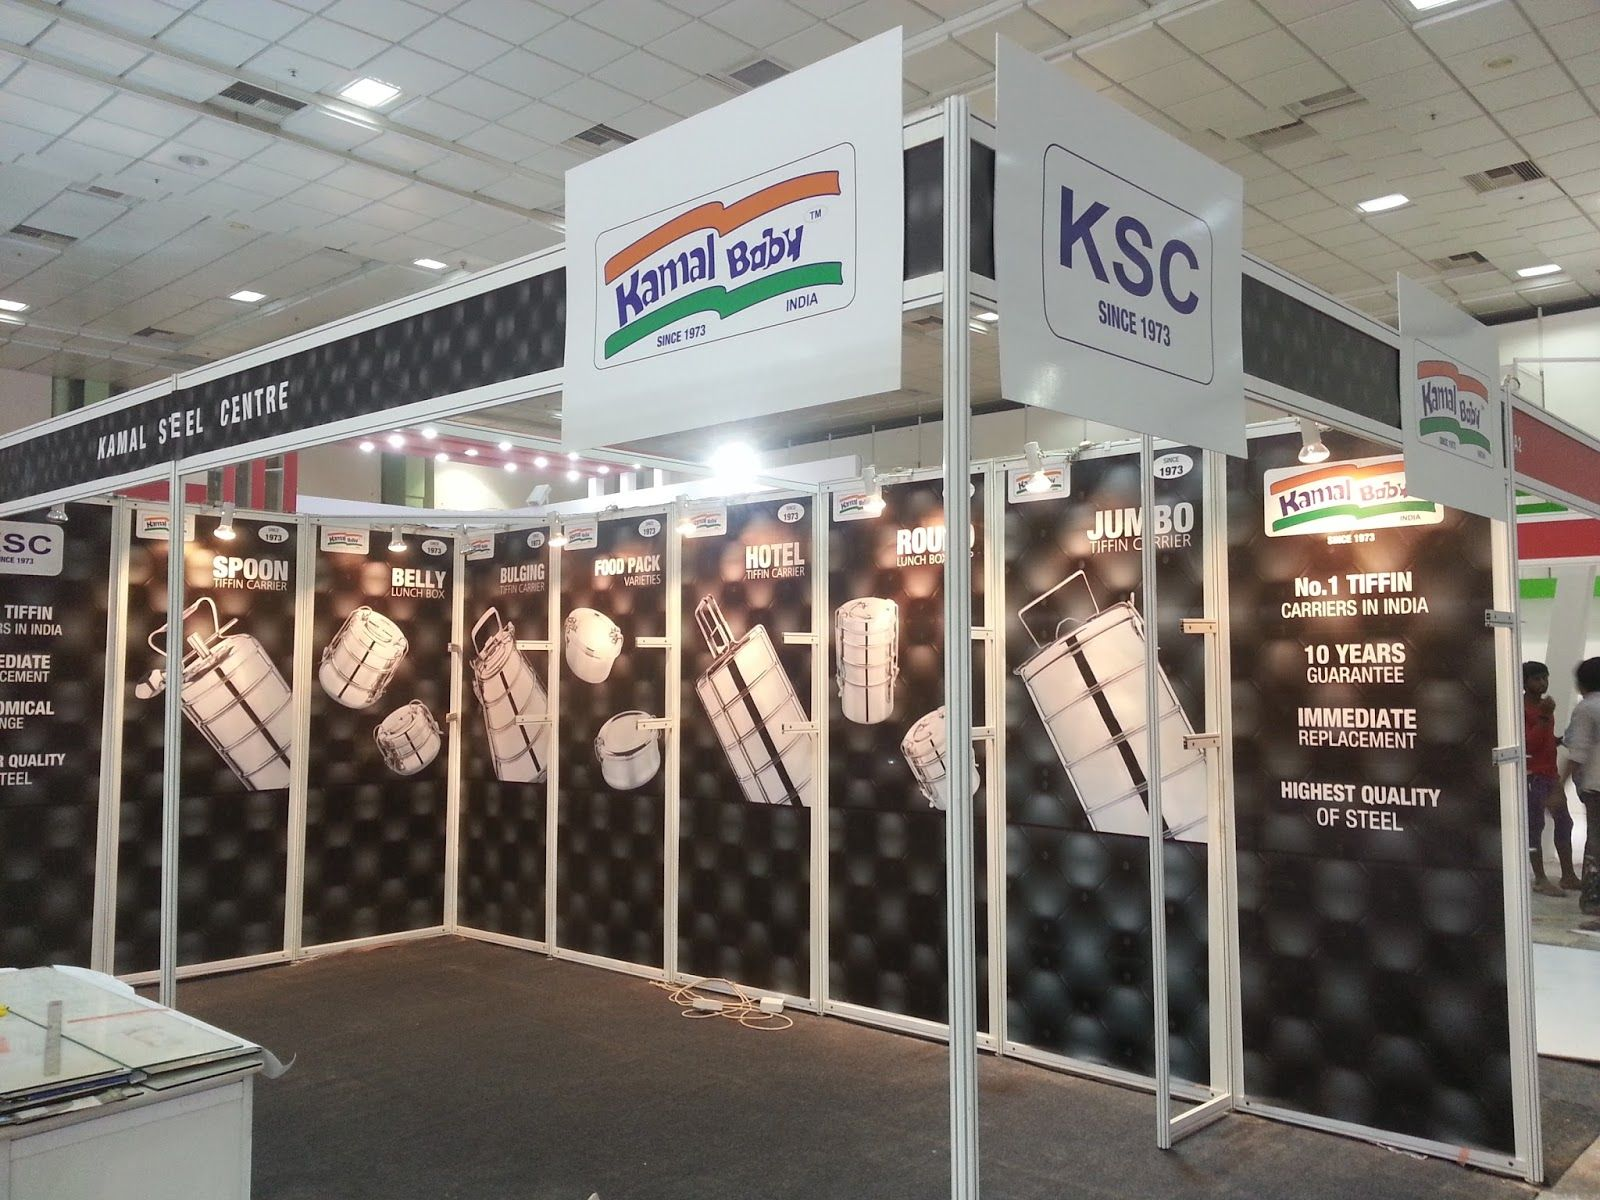 D Exhibition In Chennai : Kamal baby expo exhibition stall at chennai trade centre